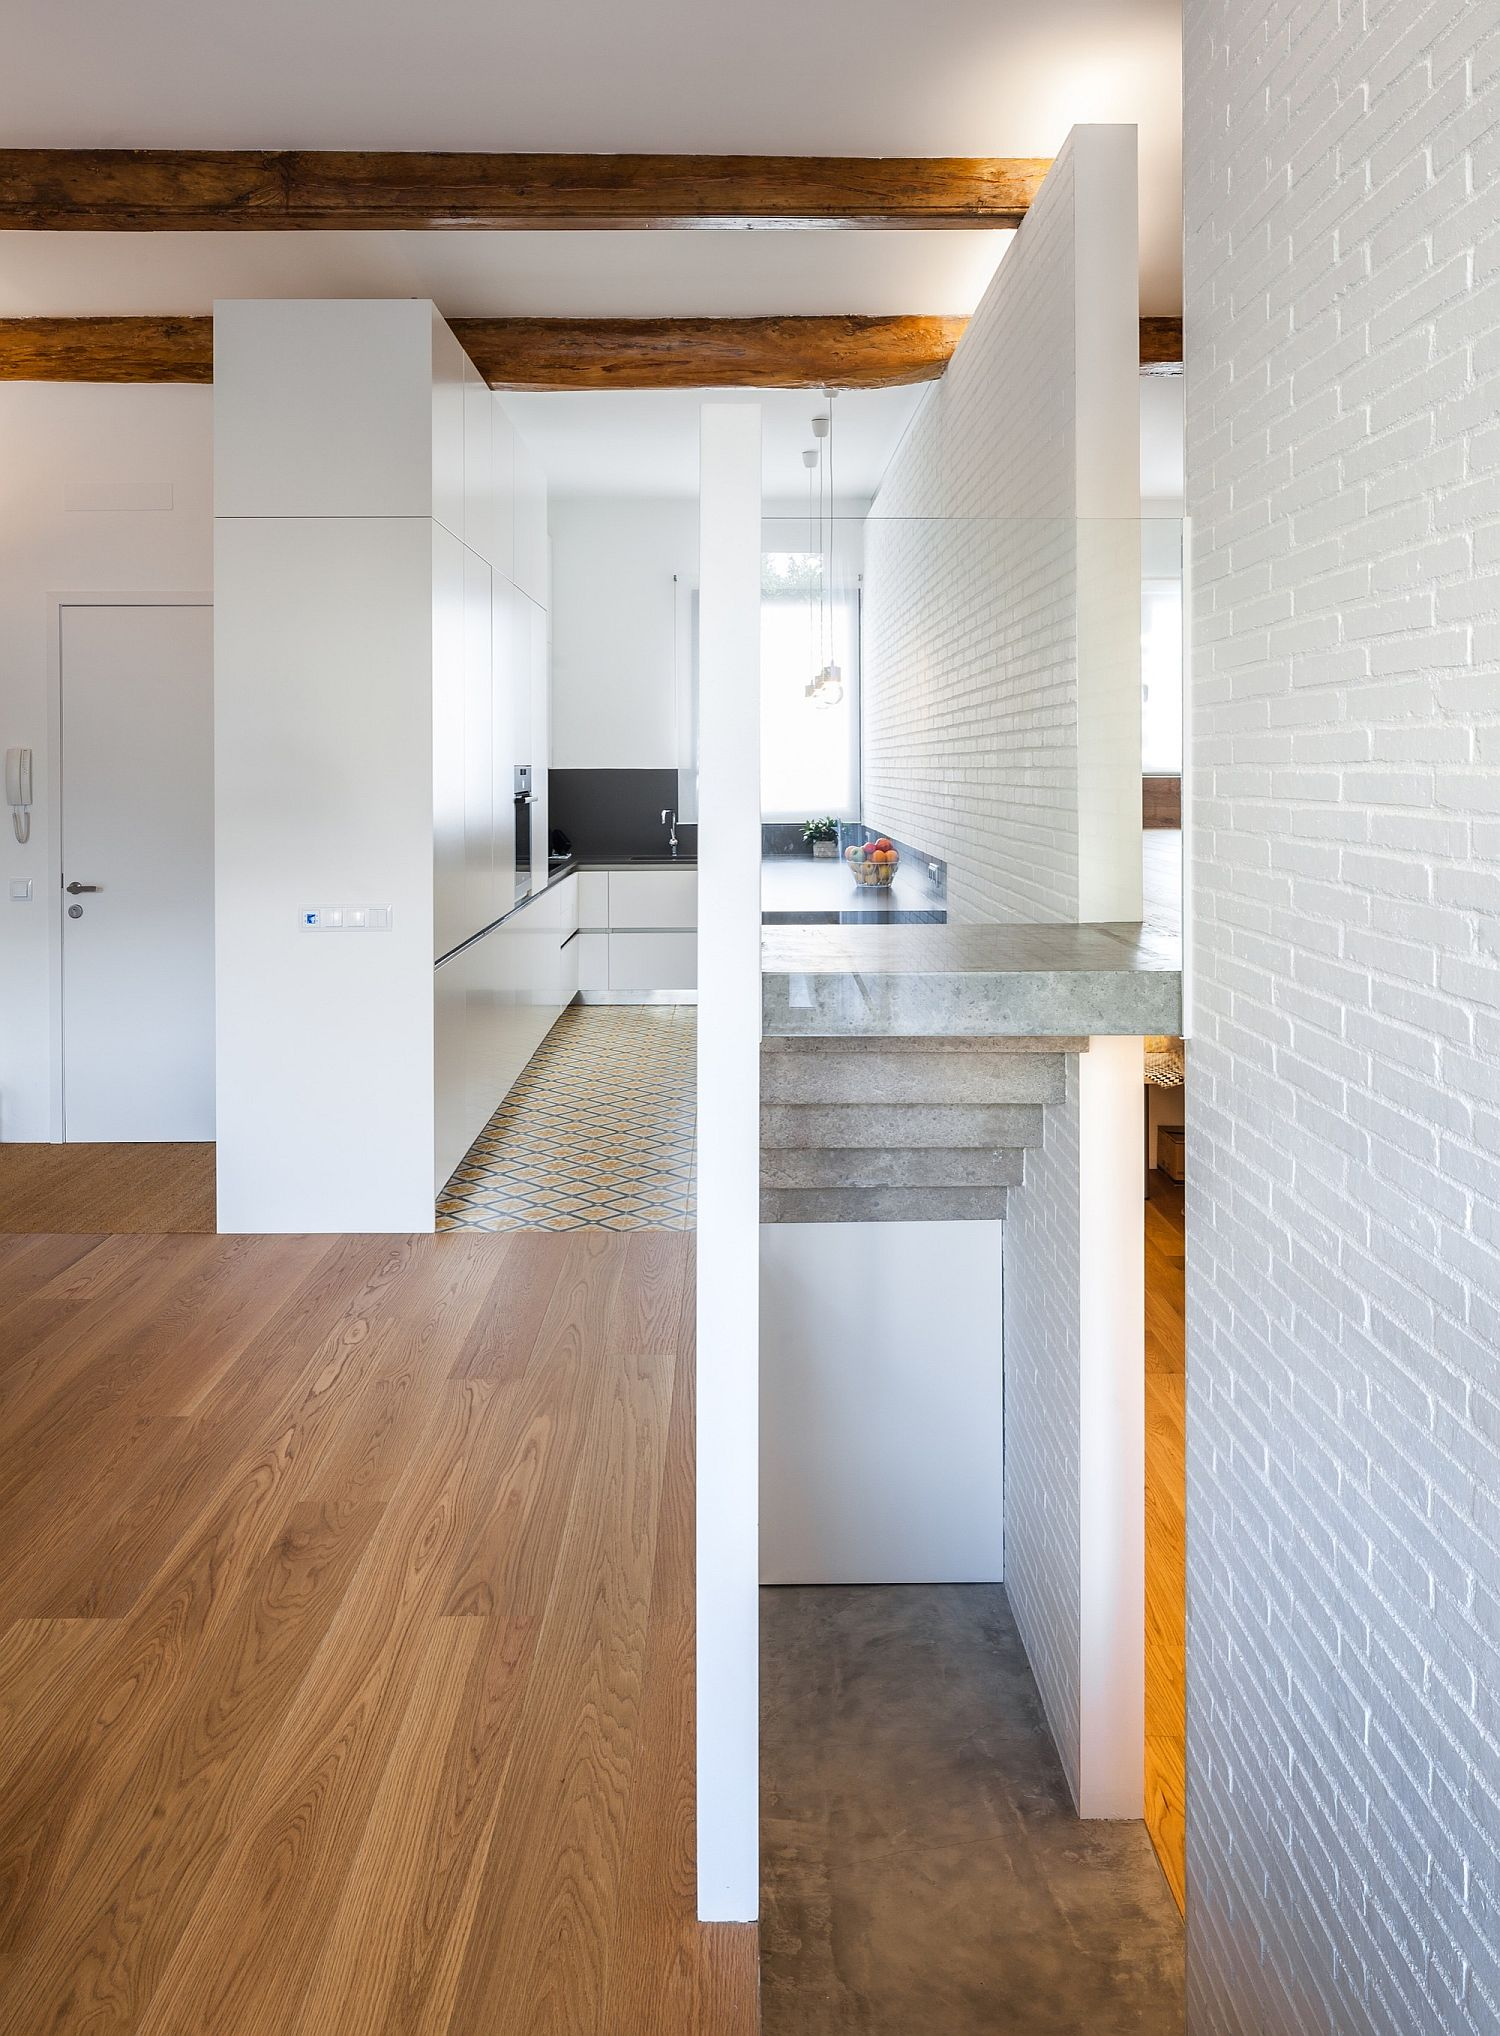 Small corner kitchen in white with wooden flooring